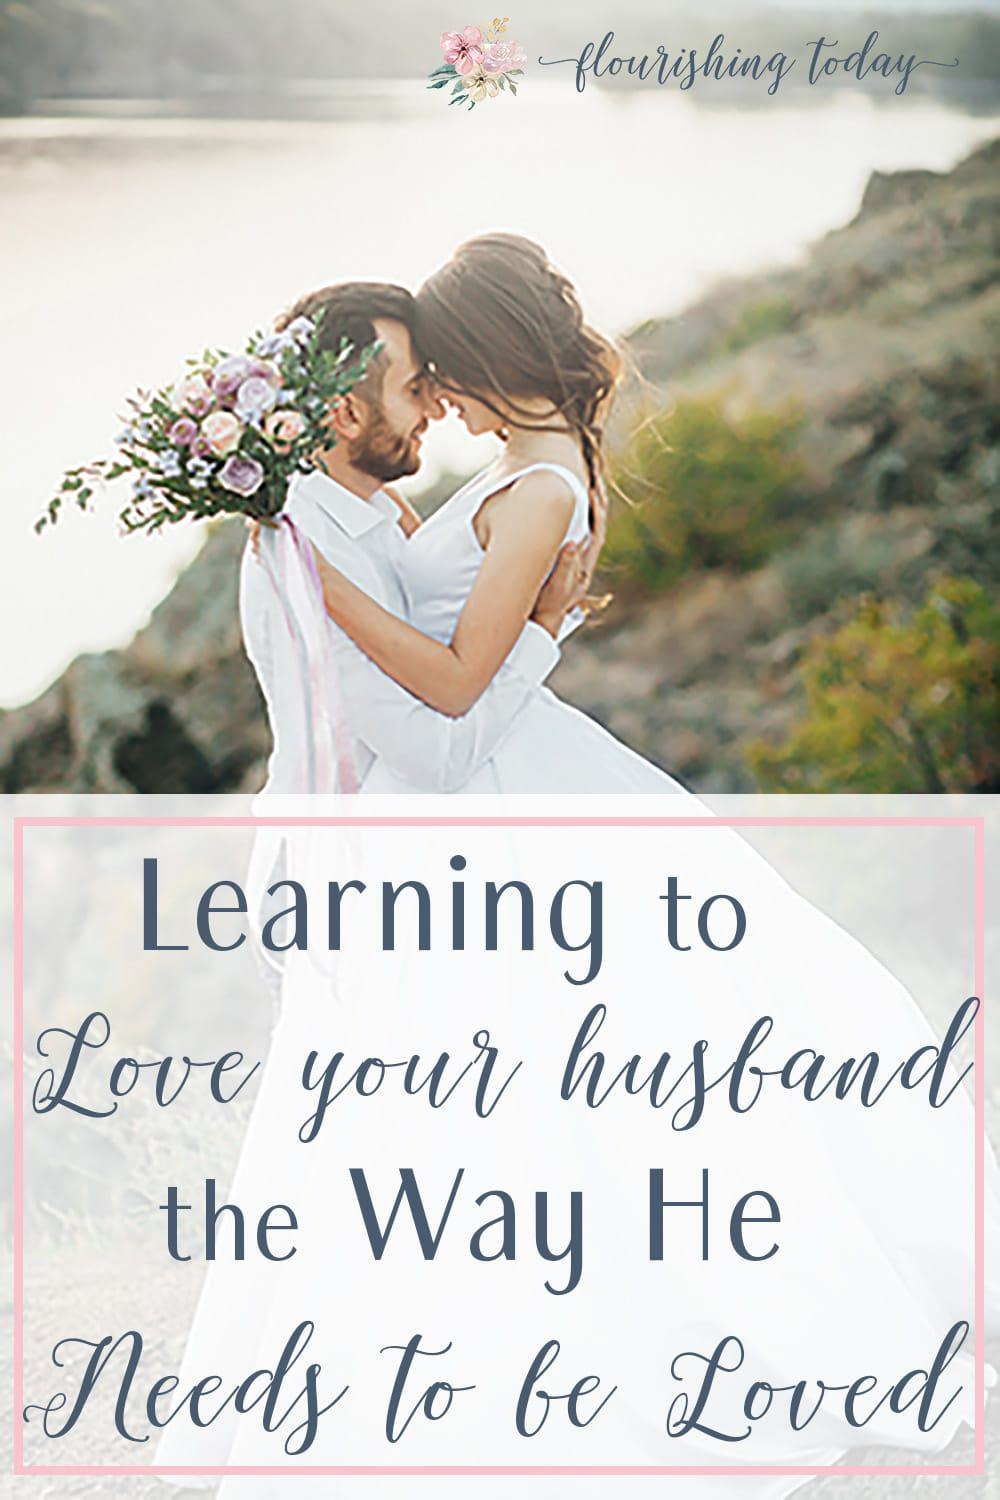 Do you love your husband the way he needs to be loved? In this post I share 3 things I learned about how to love my husband by asking him what he needs!